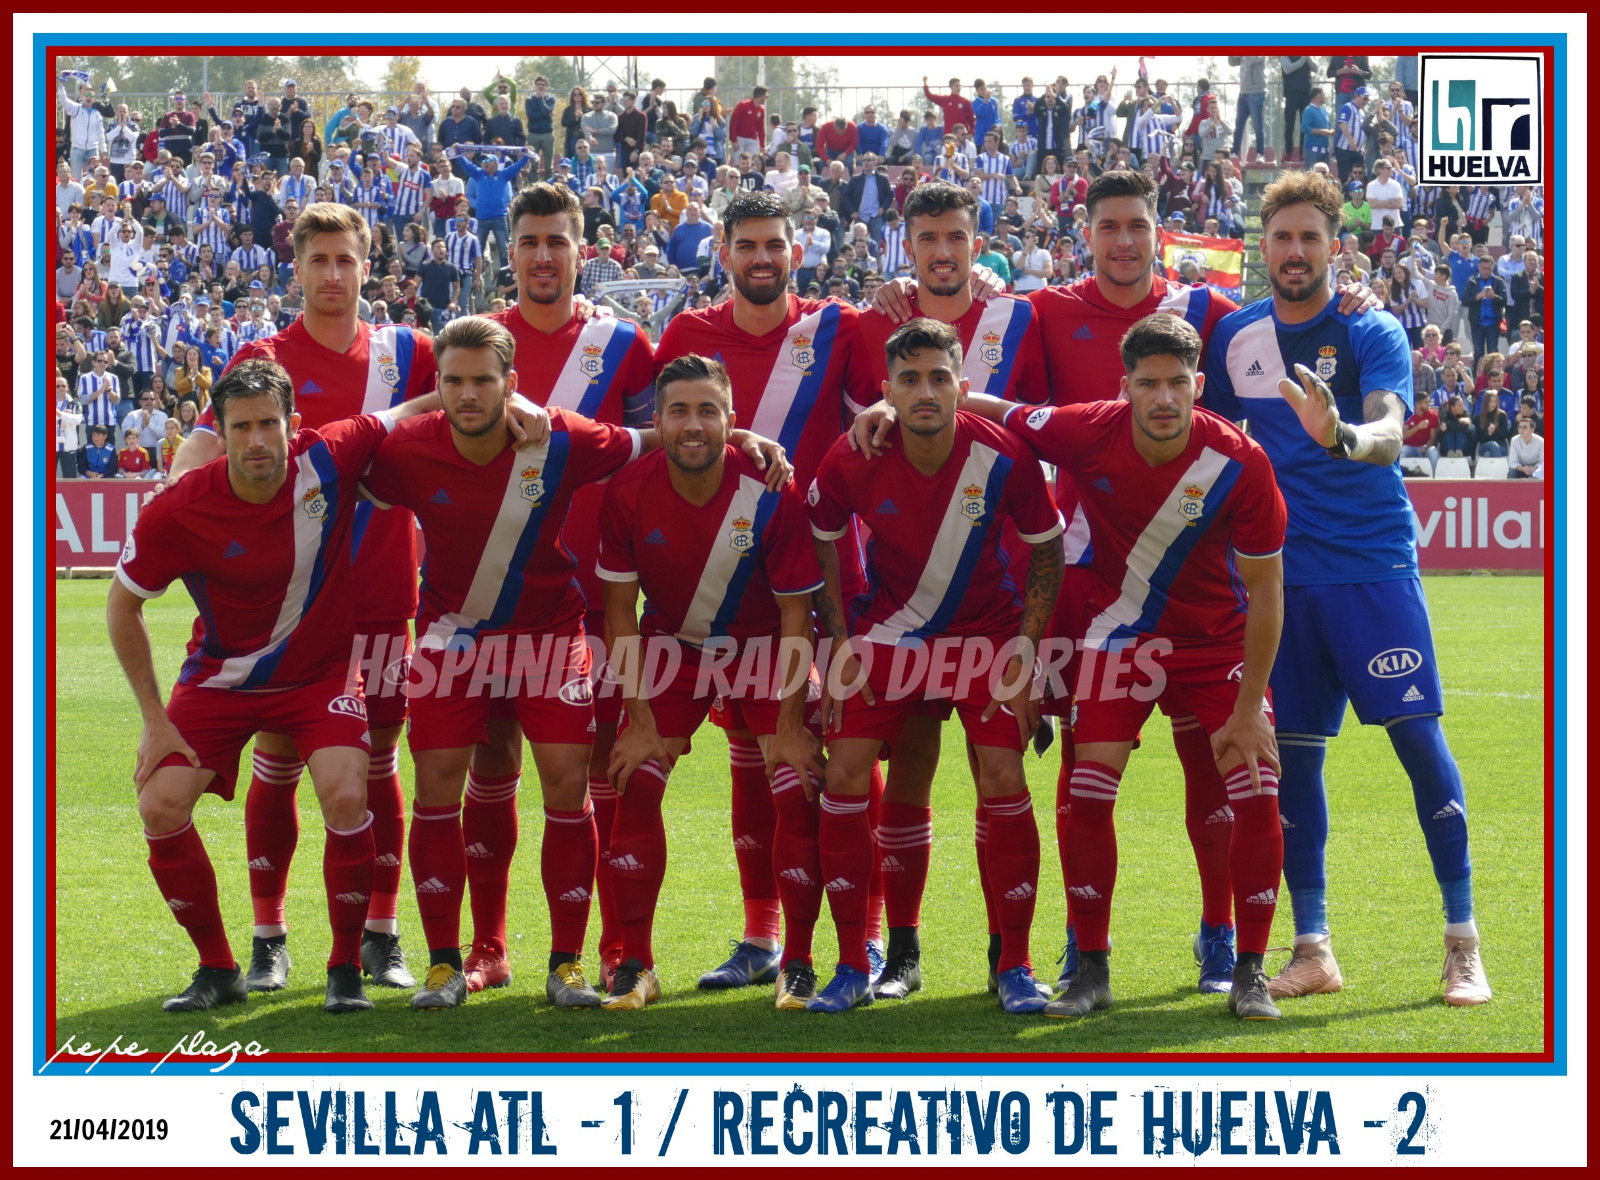 Sevilla Atl-Recreativo de Huelva 21-04-2019